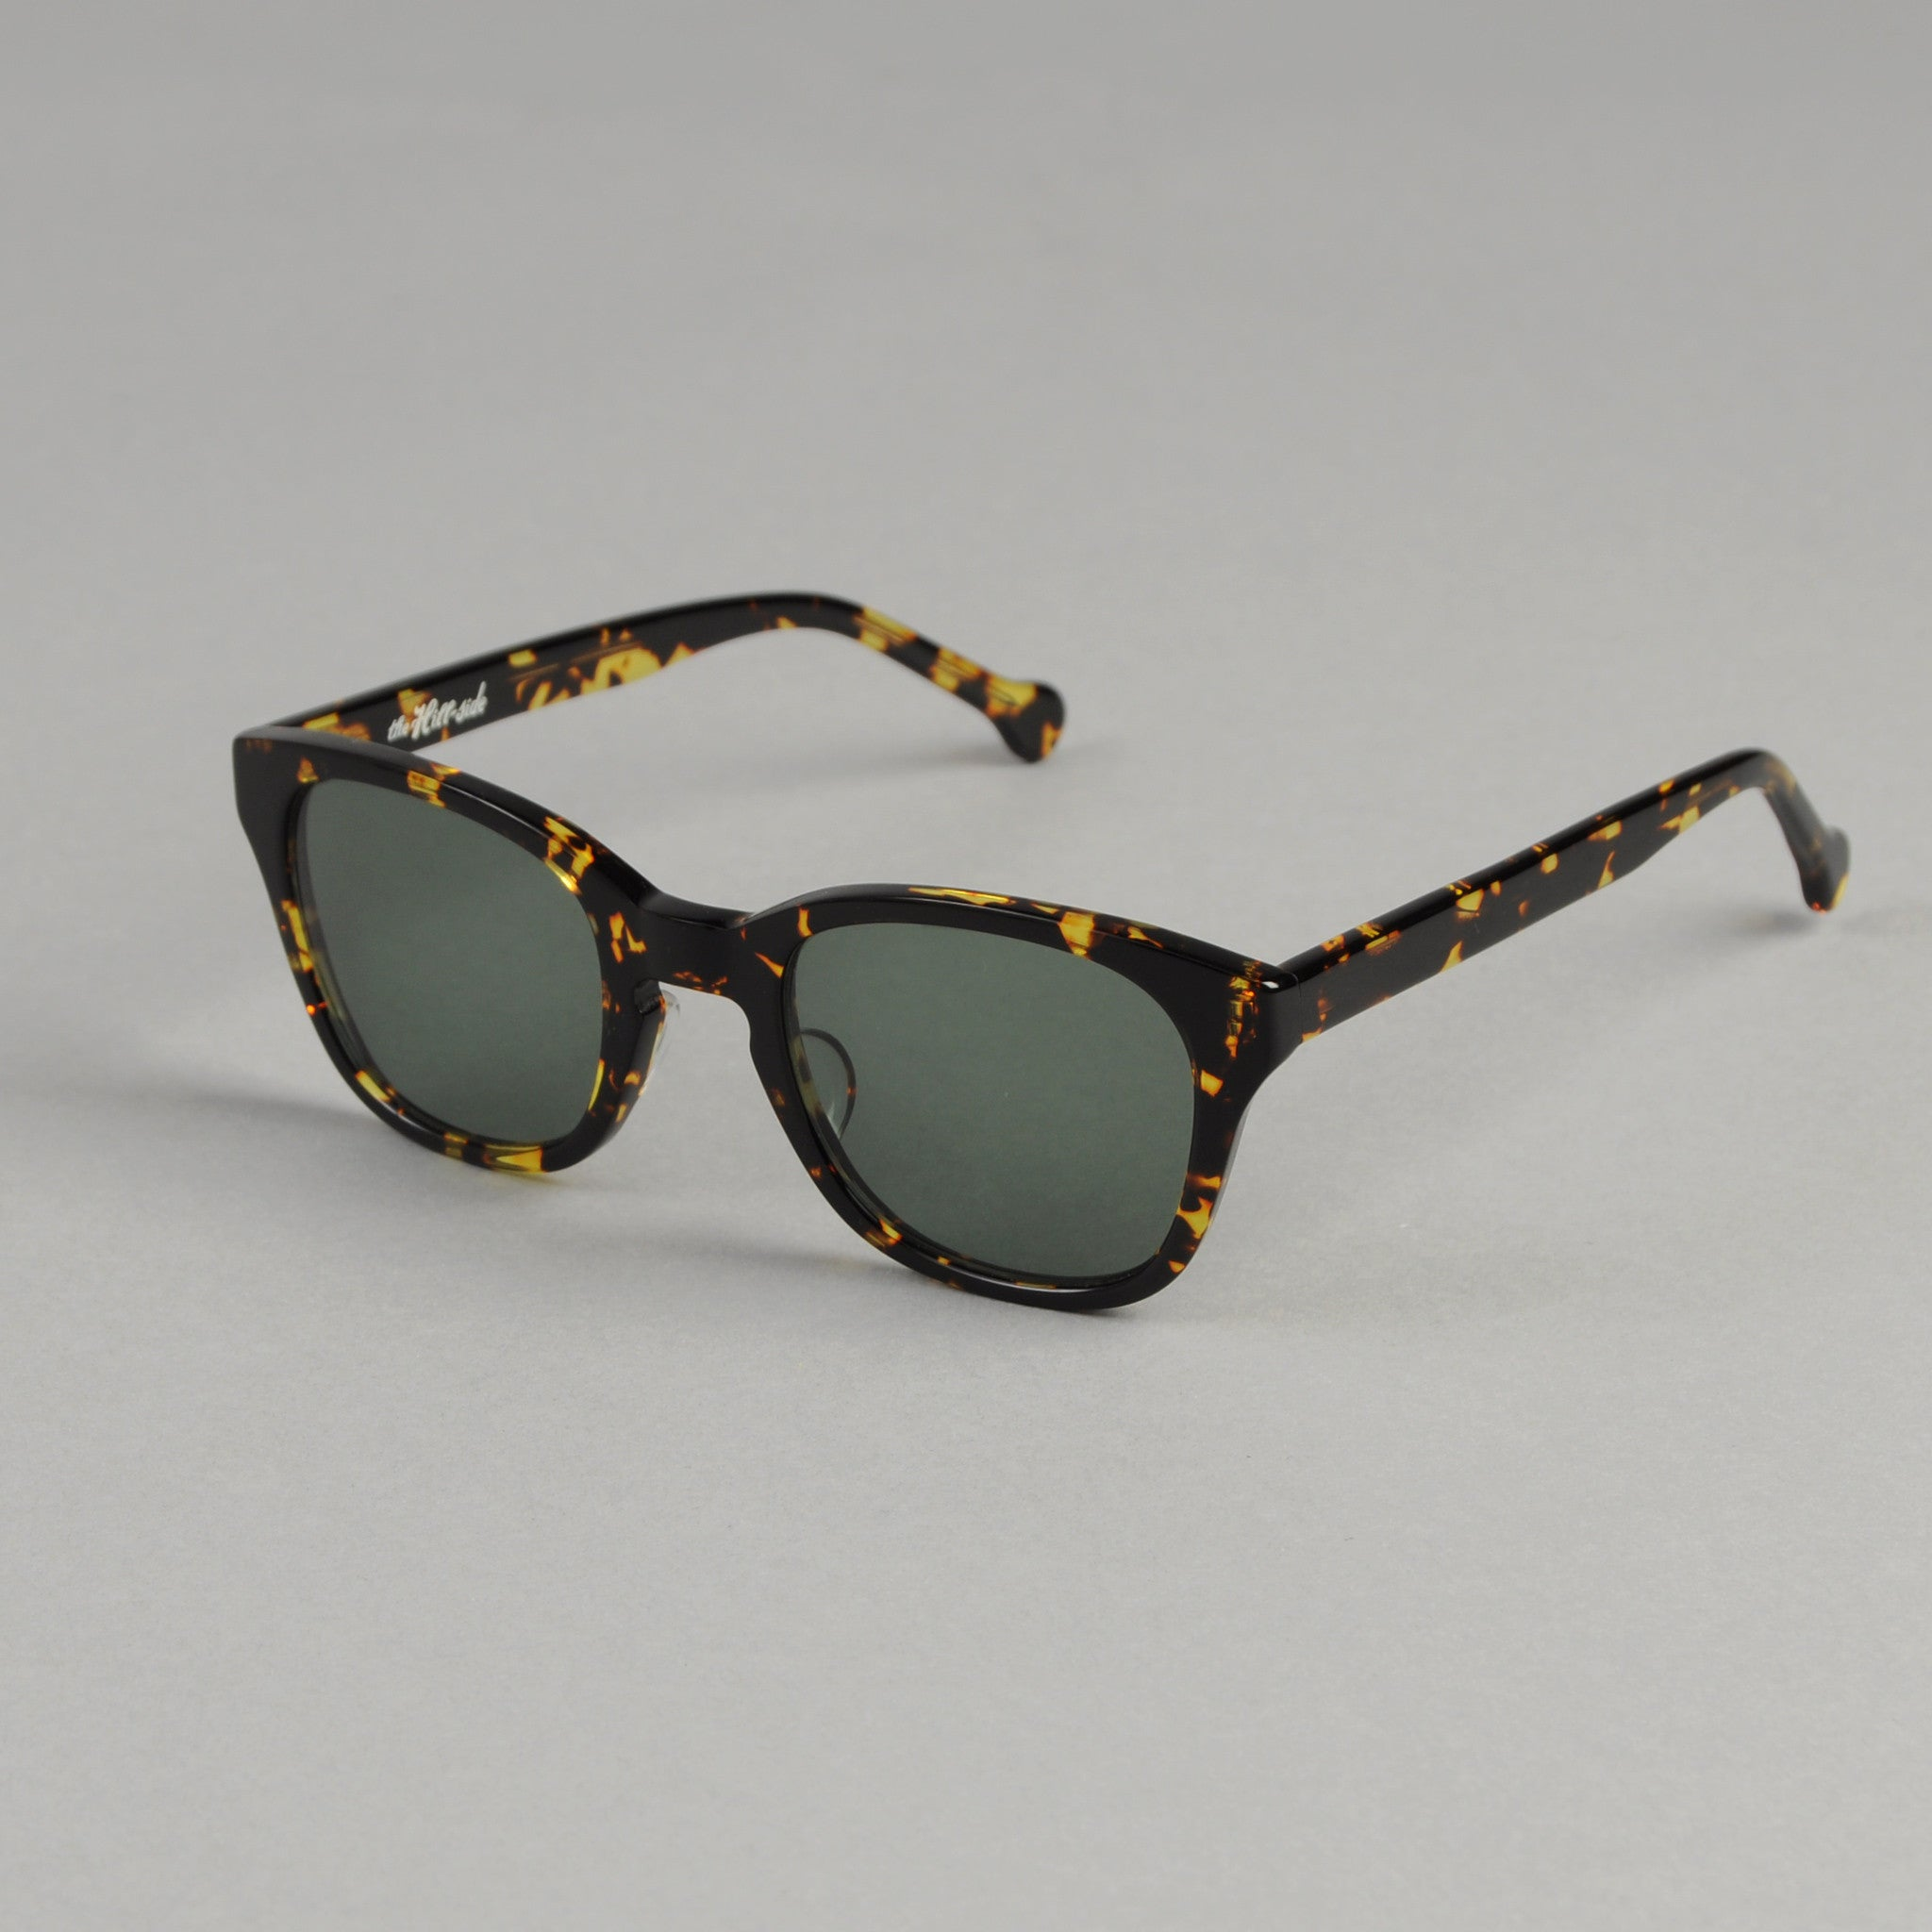 The Hill-Side - Handmade Acetate Sunglasses, Tortoise - SU2-02